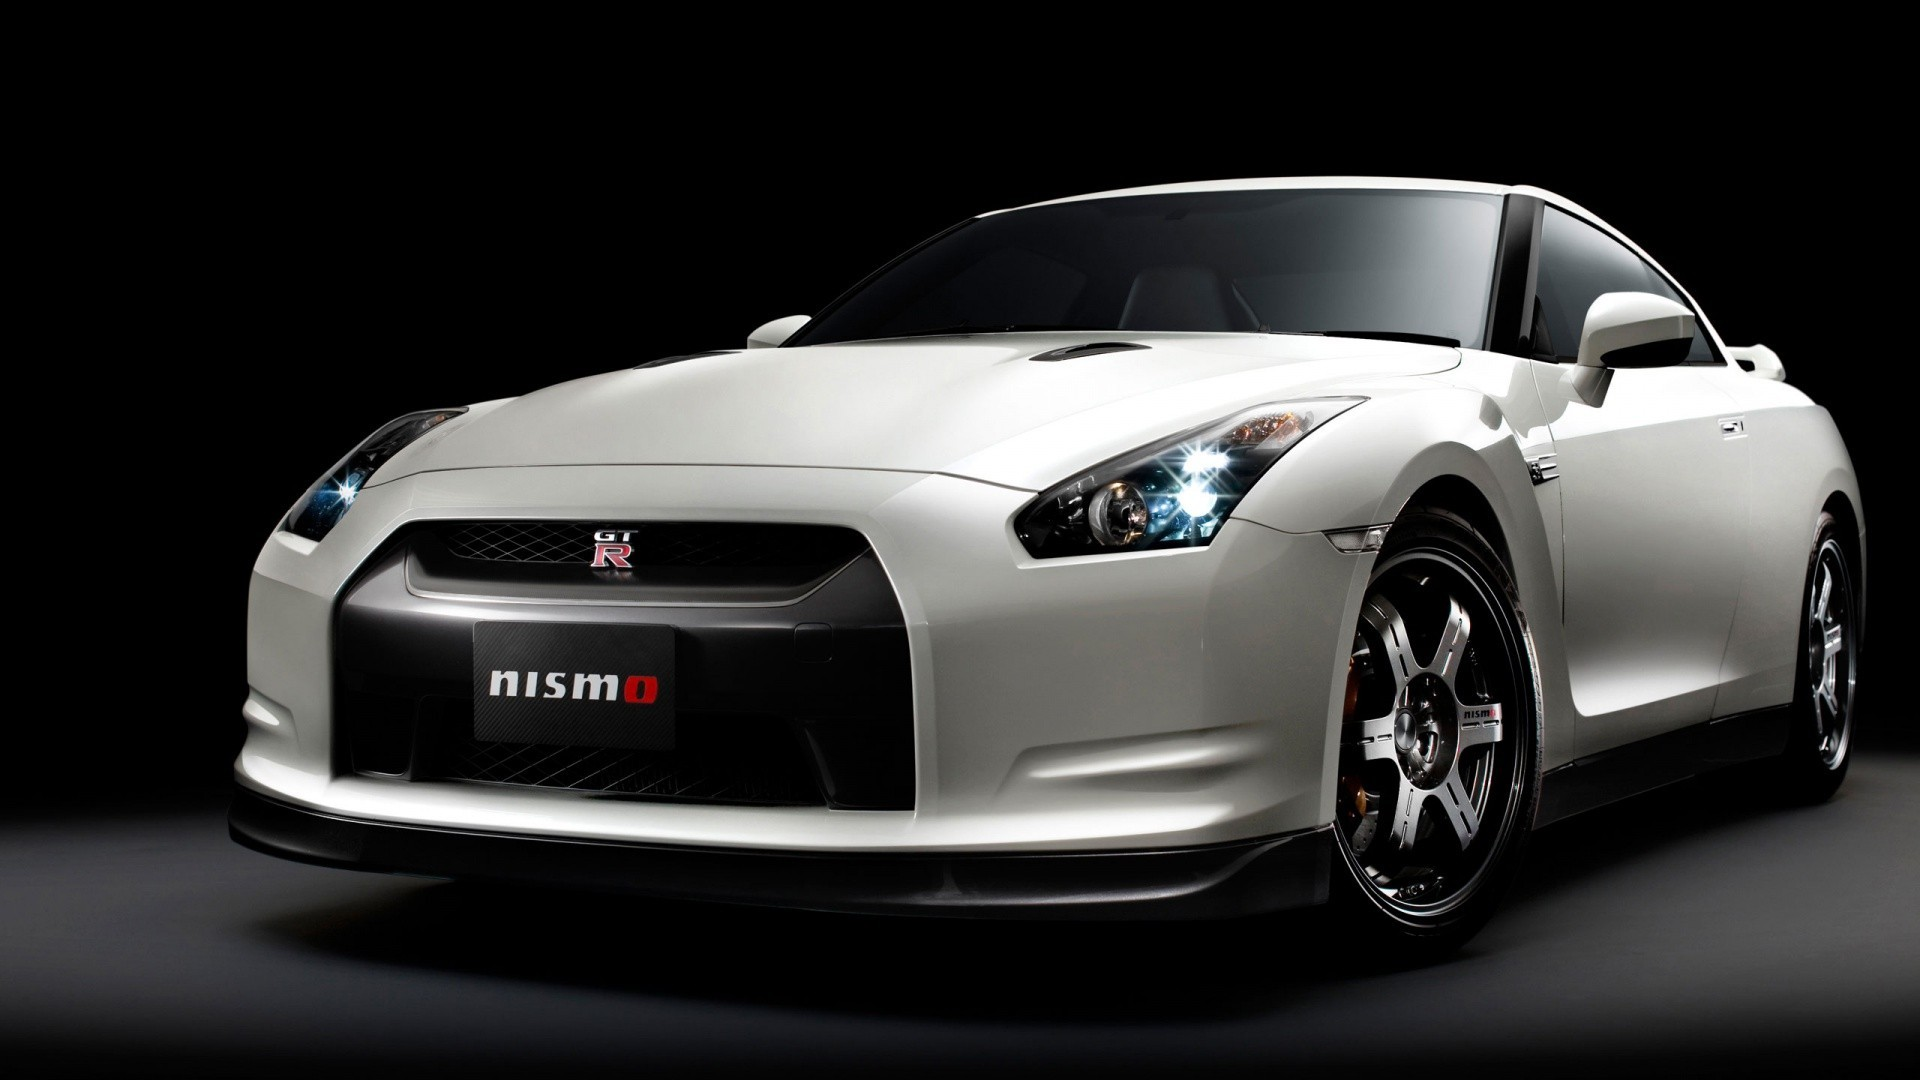 cars Sports Nissan nismo HD Wallpaper